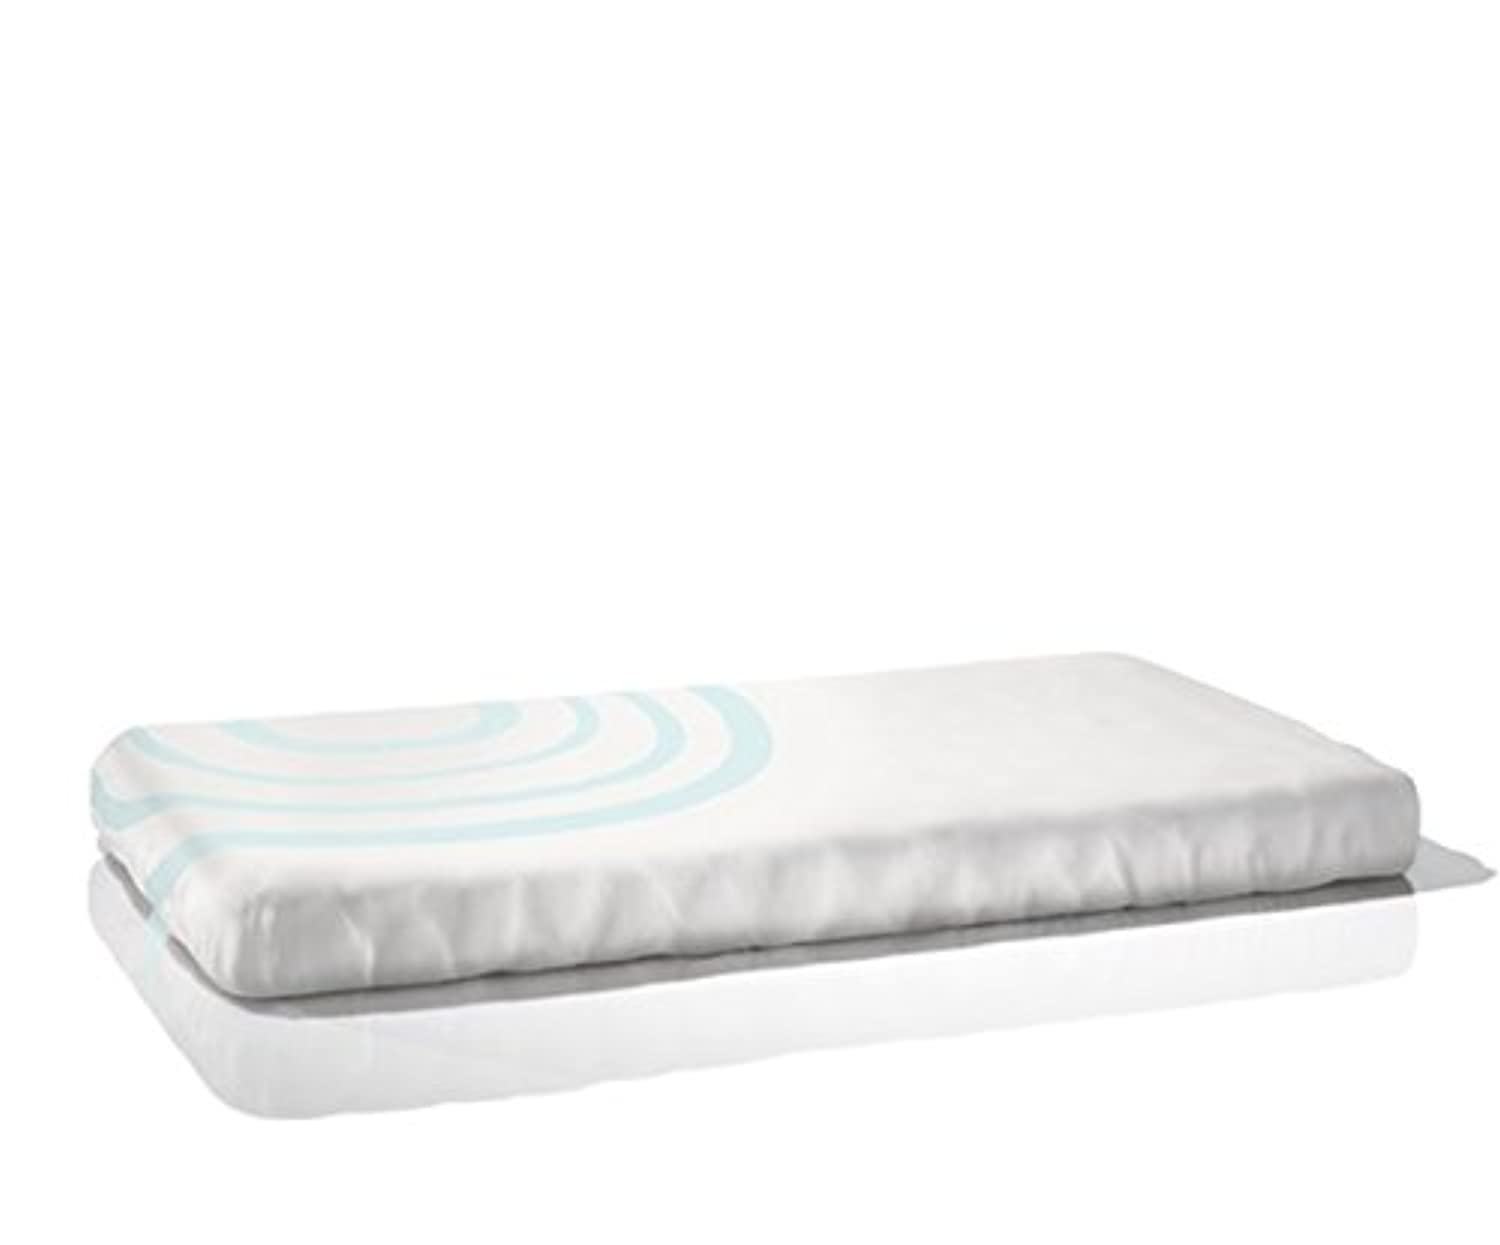 Nook Sleep Systems Organic Fitted Crib Sheet (Ripple Design Seaglass (Light Blue)) by Nook